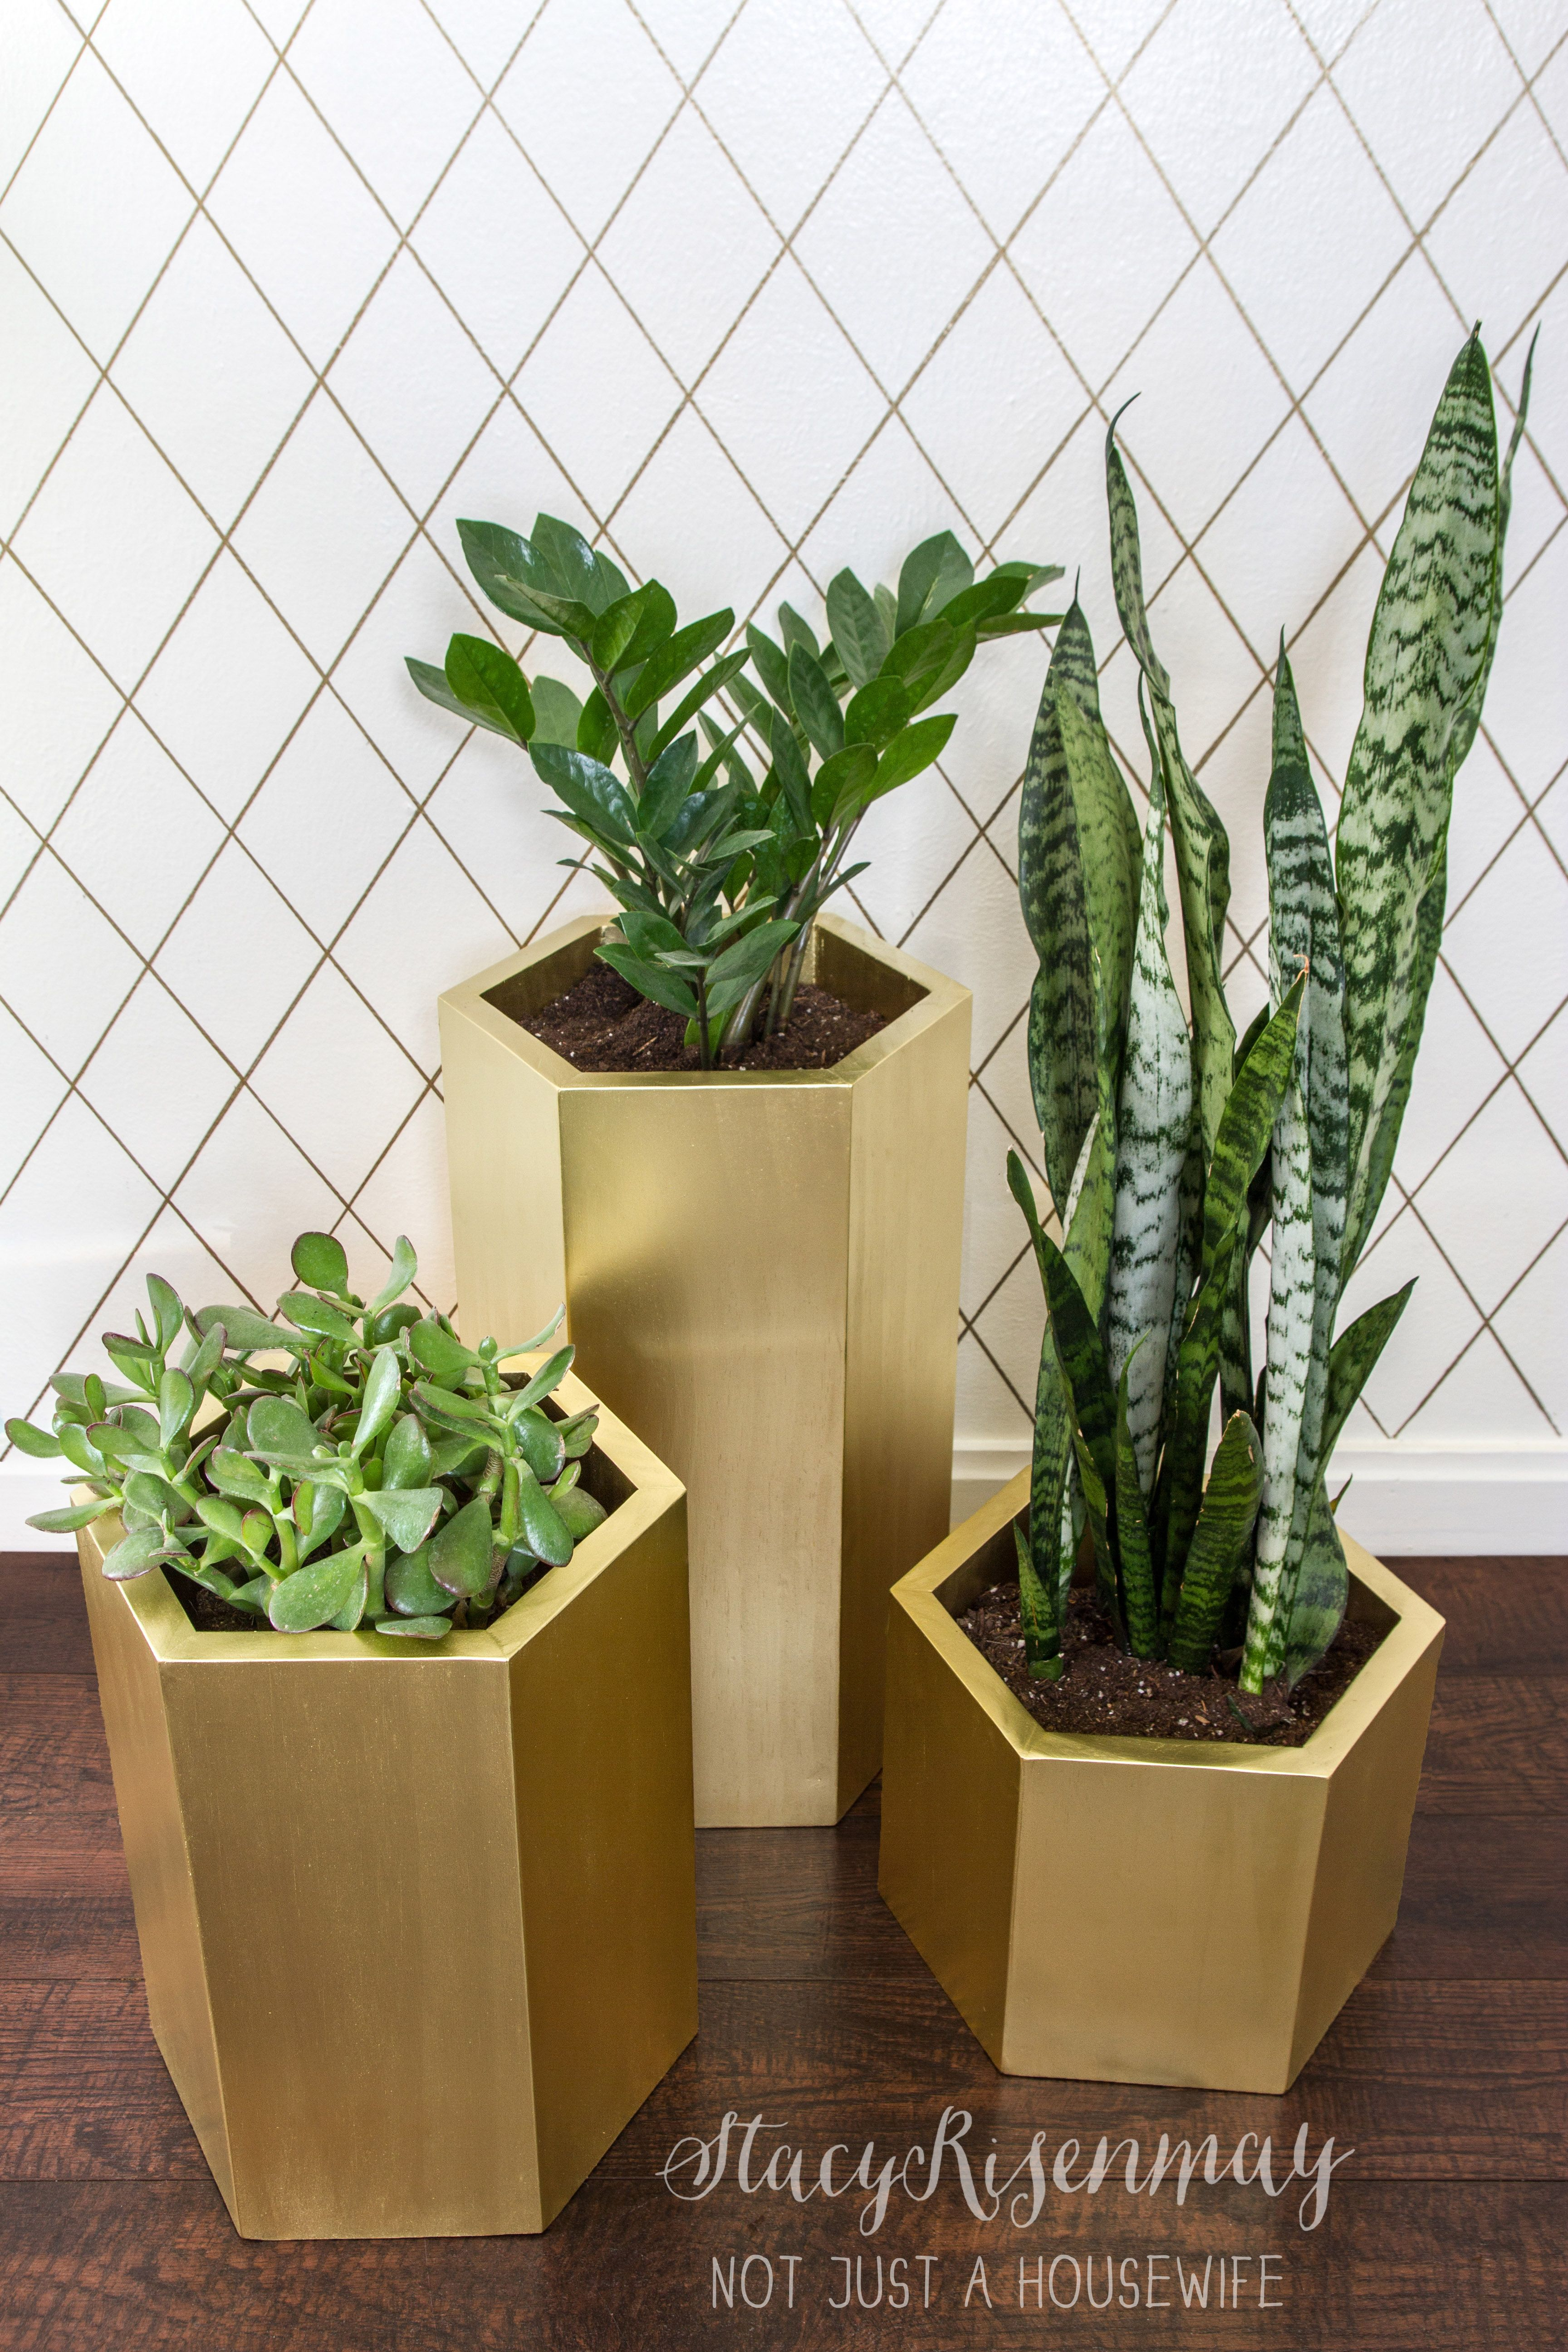 My Favorite Planter Projects Diy planters, Planters